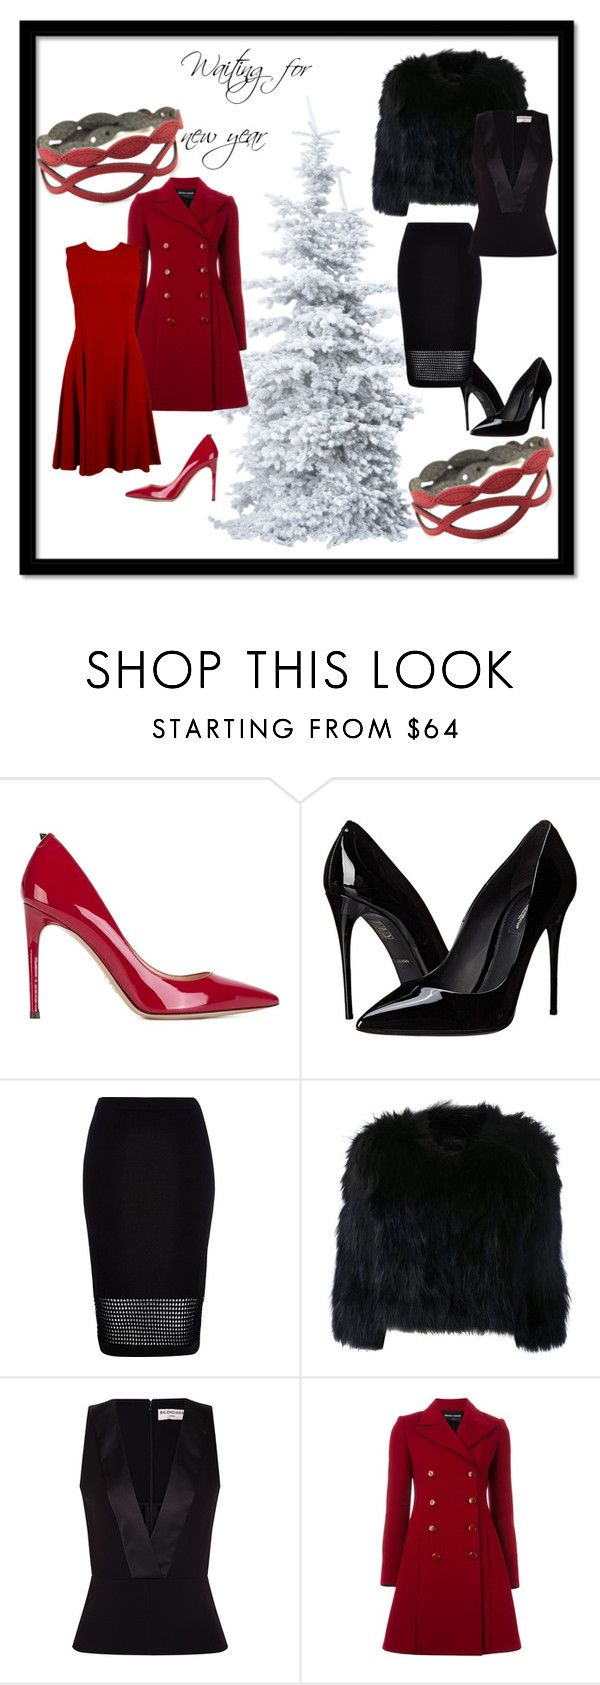 """""""Waiting for new year"""" by krilajewels on Polyvore featuring moda, Valentino, Dolce&Gabbana, River Island, H Brand, Balenciaga, Emporio Armani e Holly"""